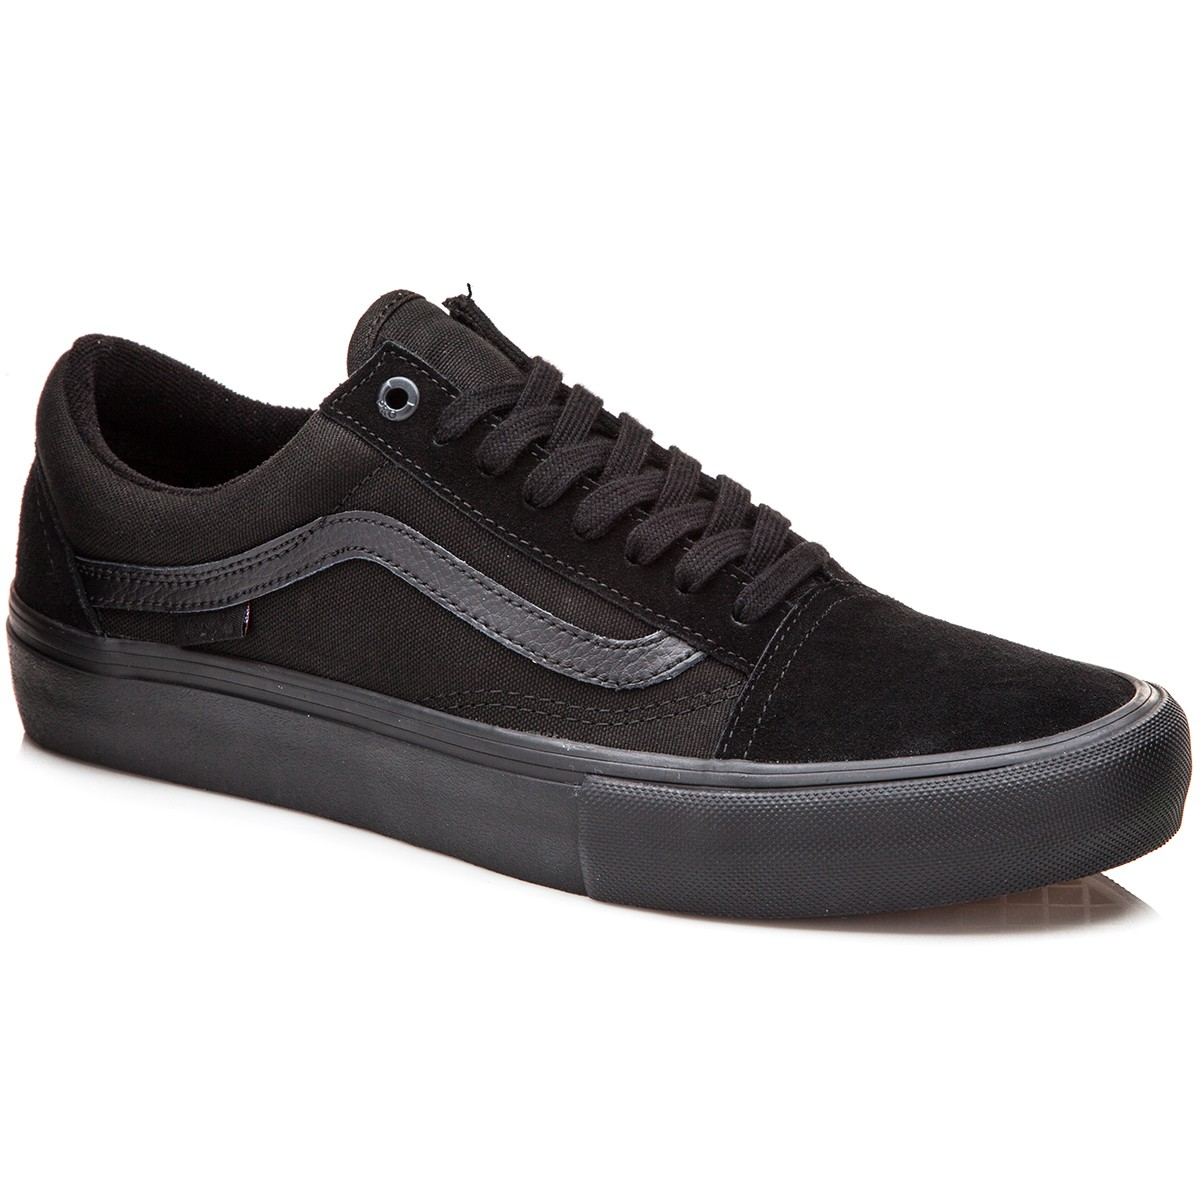 05243b58b94a Vans Old Skool Pro Shoes